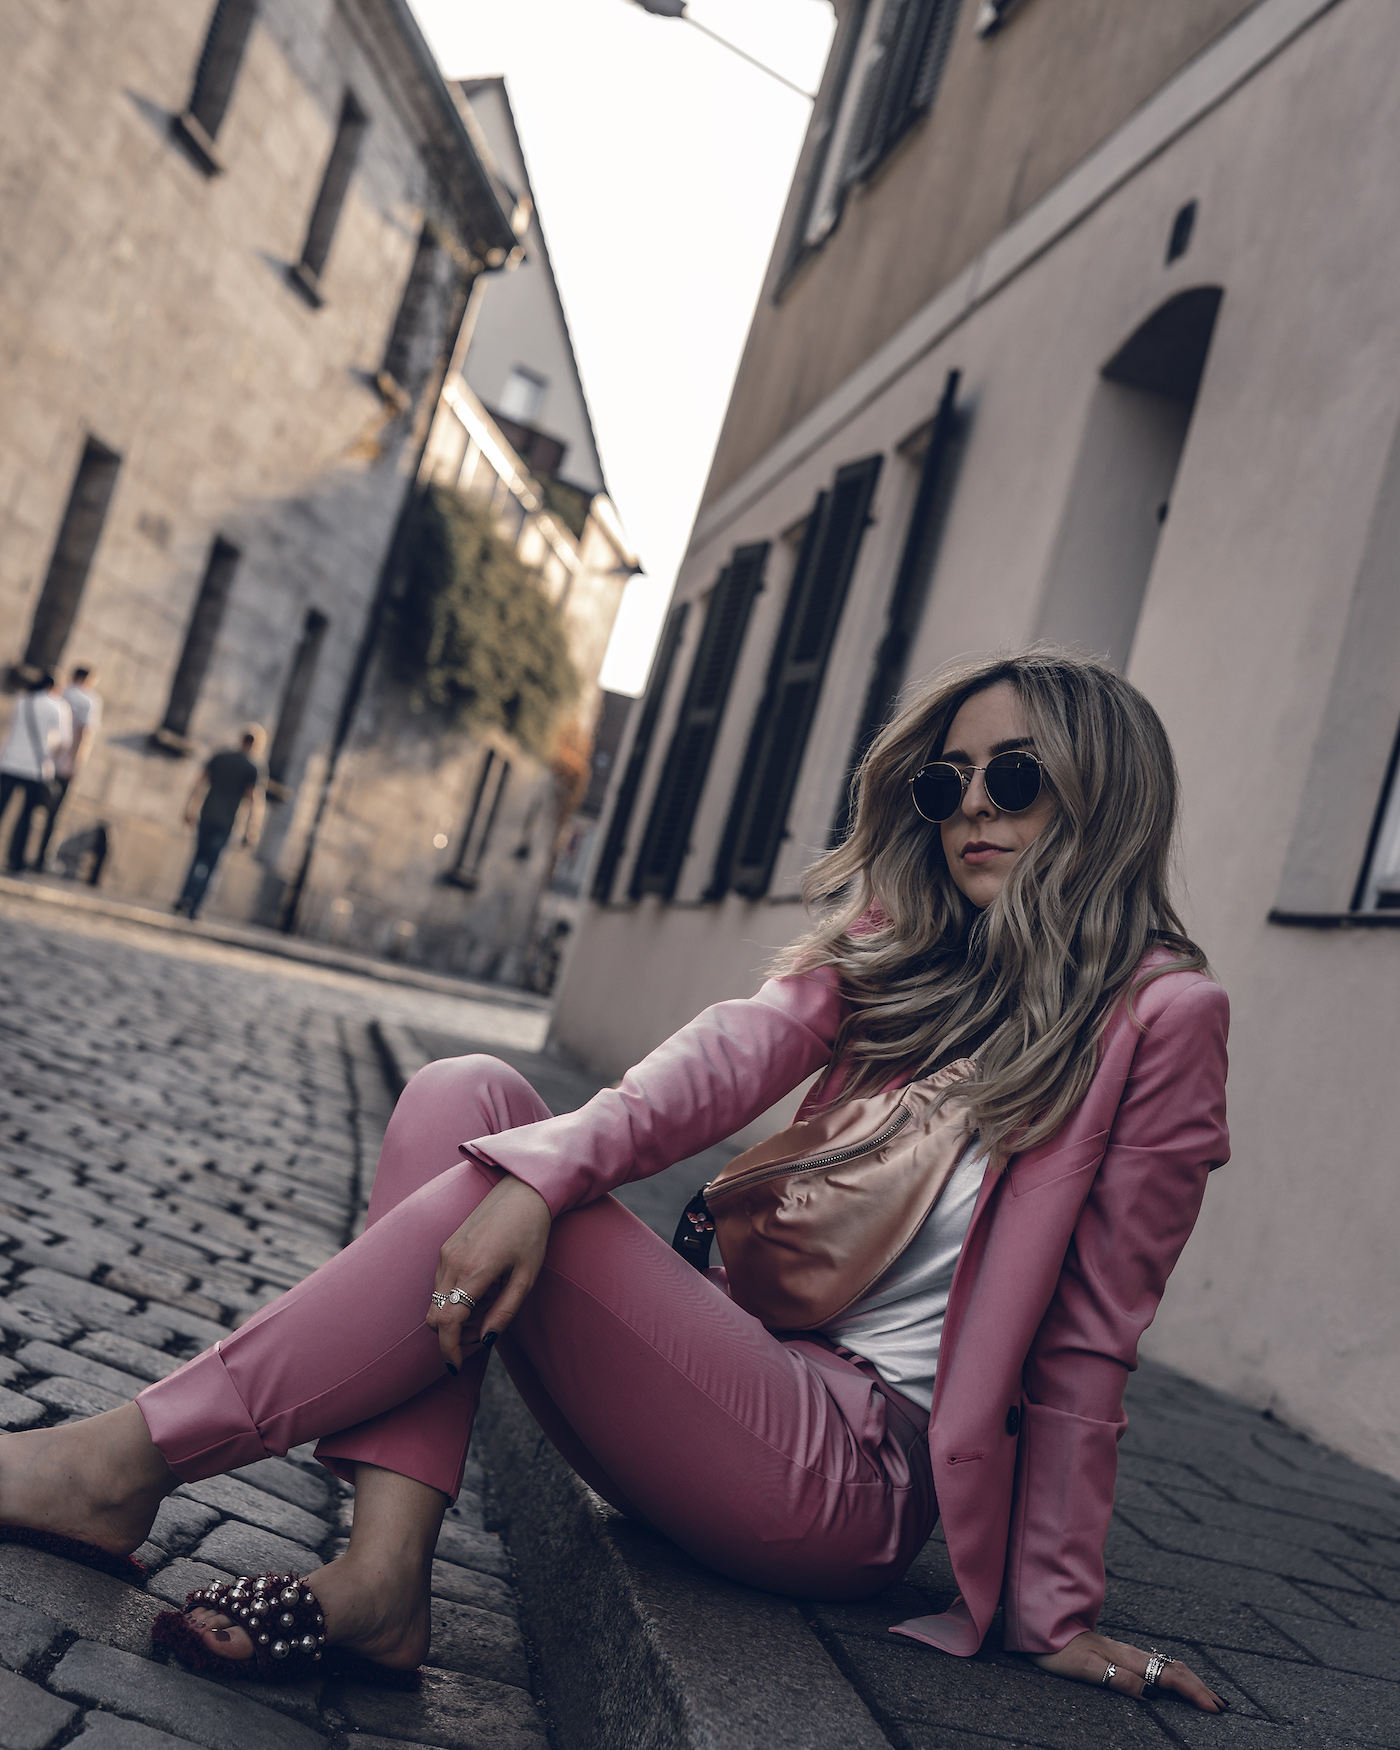 Spring Suit Pastel Women Streetstyle Outfit 2018 Summer Fashion Modern Casual Business   seen on Want Get Repeat Blog